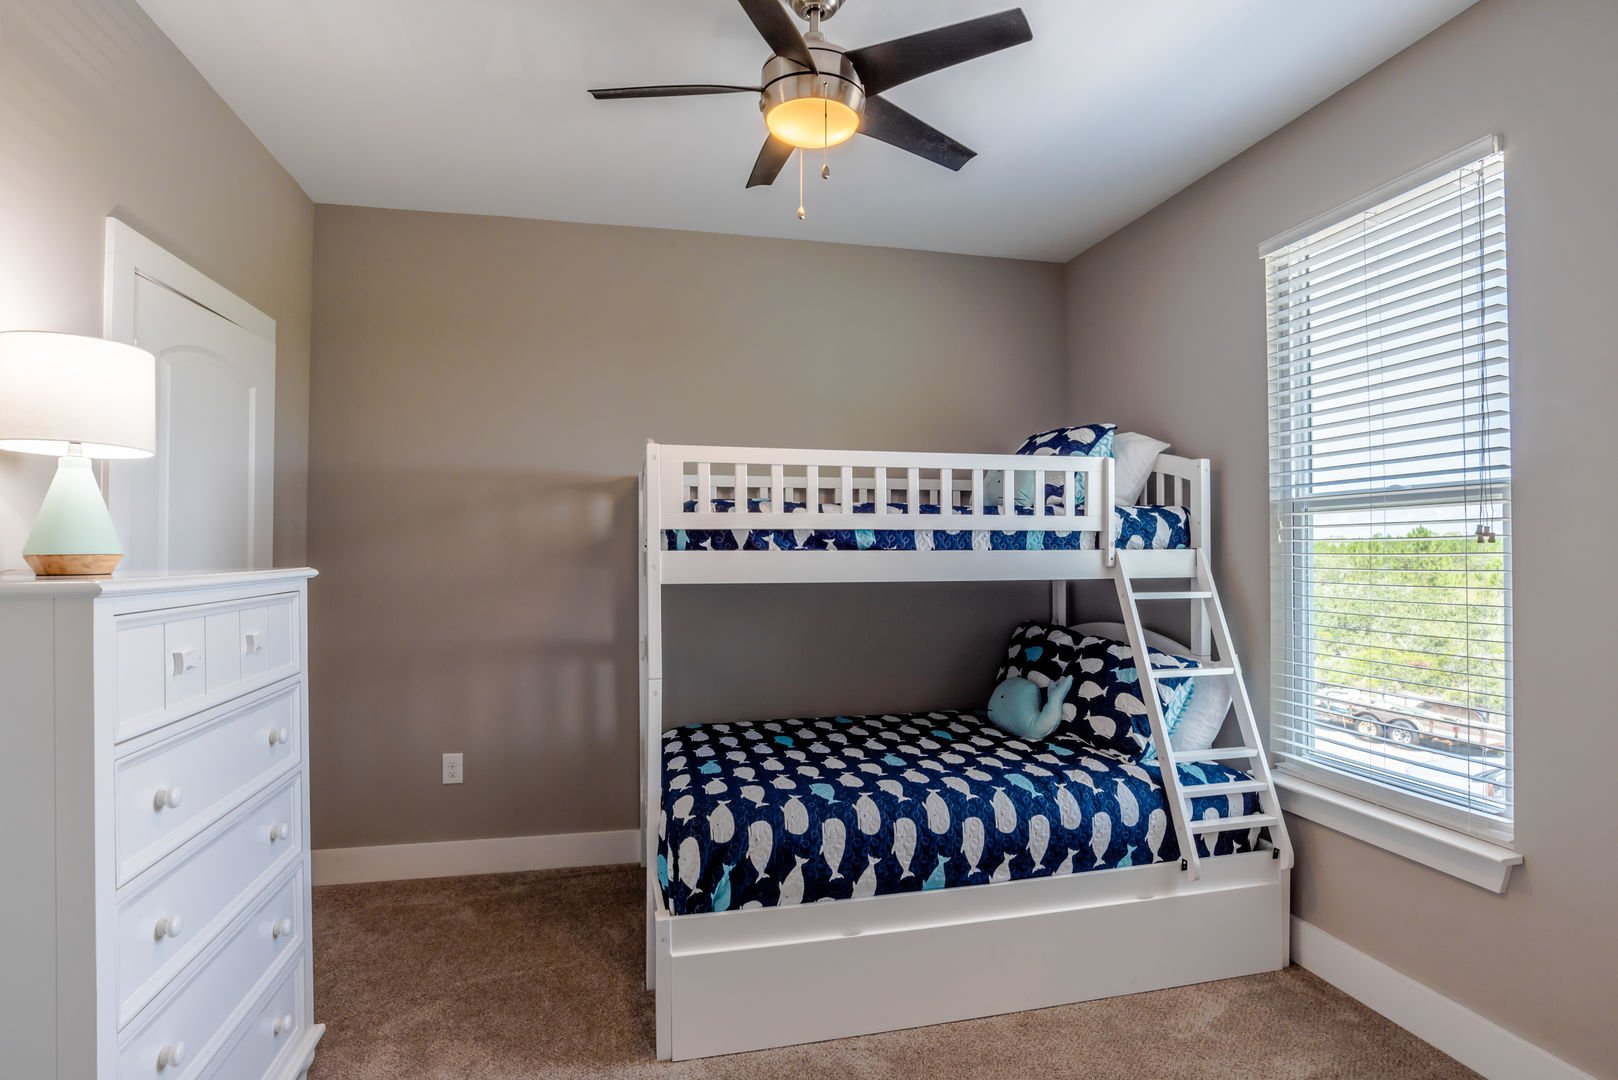 The Third Guest Bedroom Has a Twin Over Full Bunk With Trundle. It is Also Connected to The Common Bathroom.